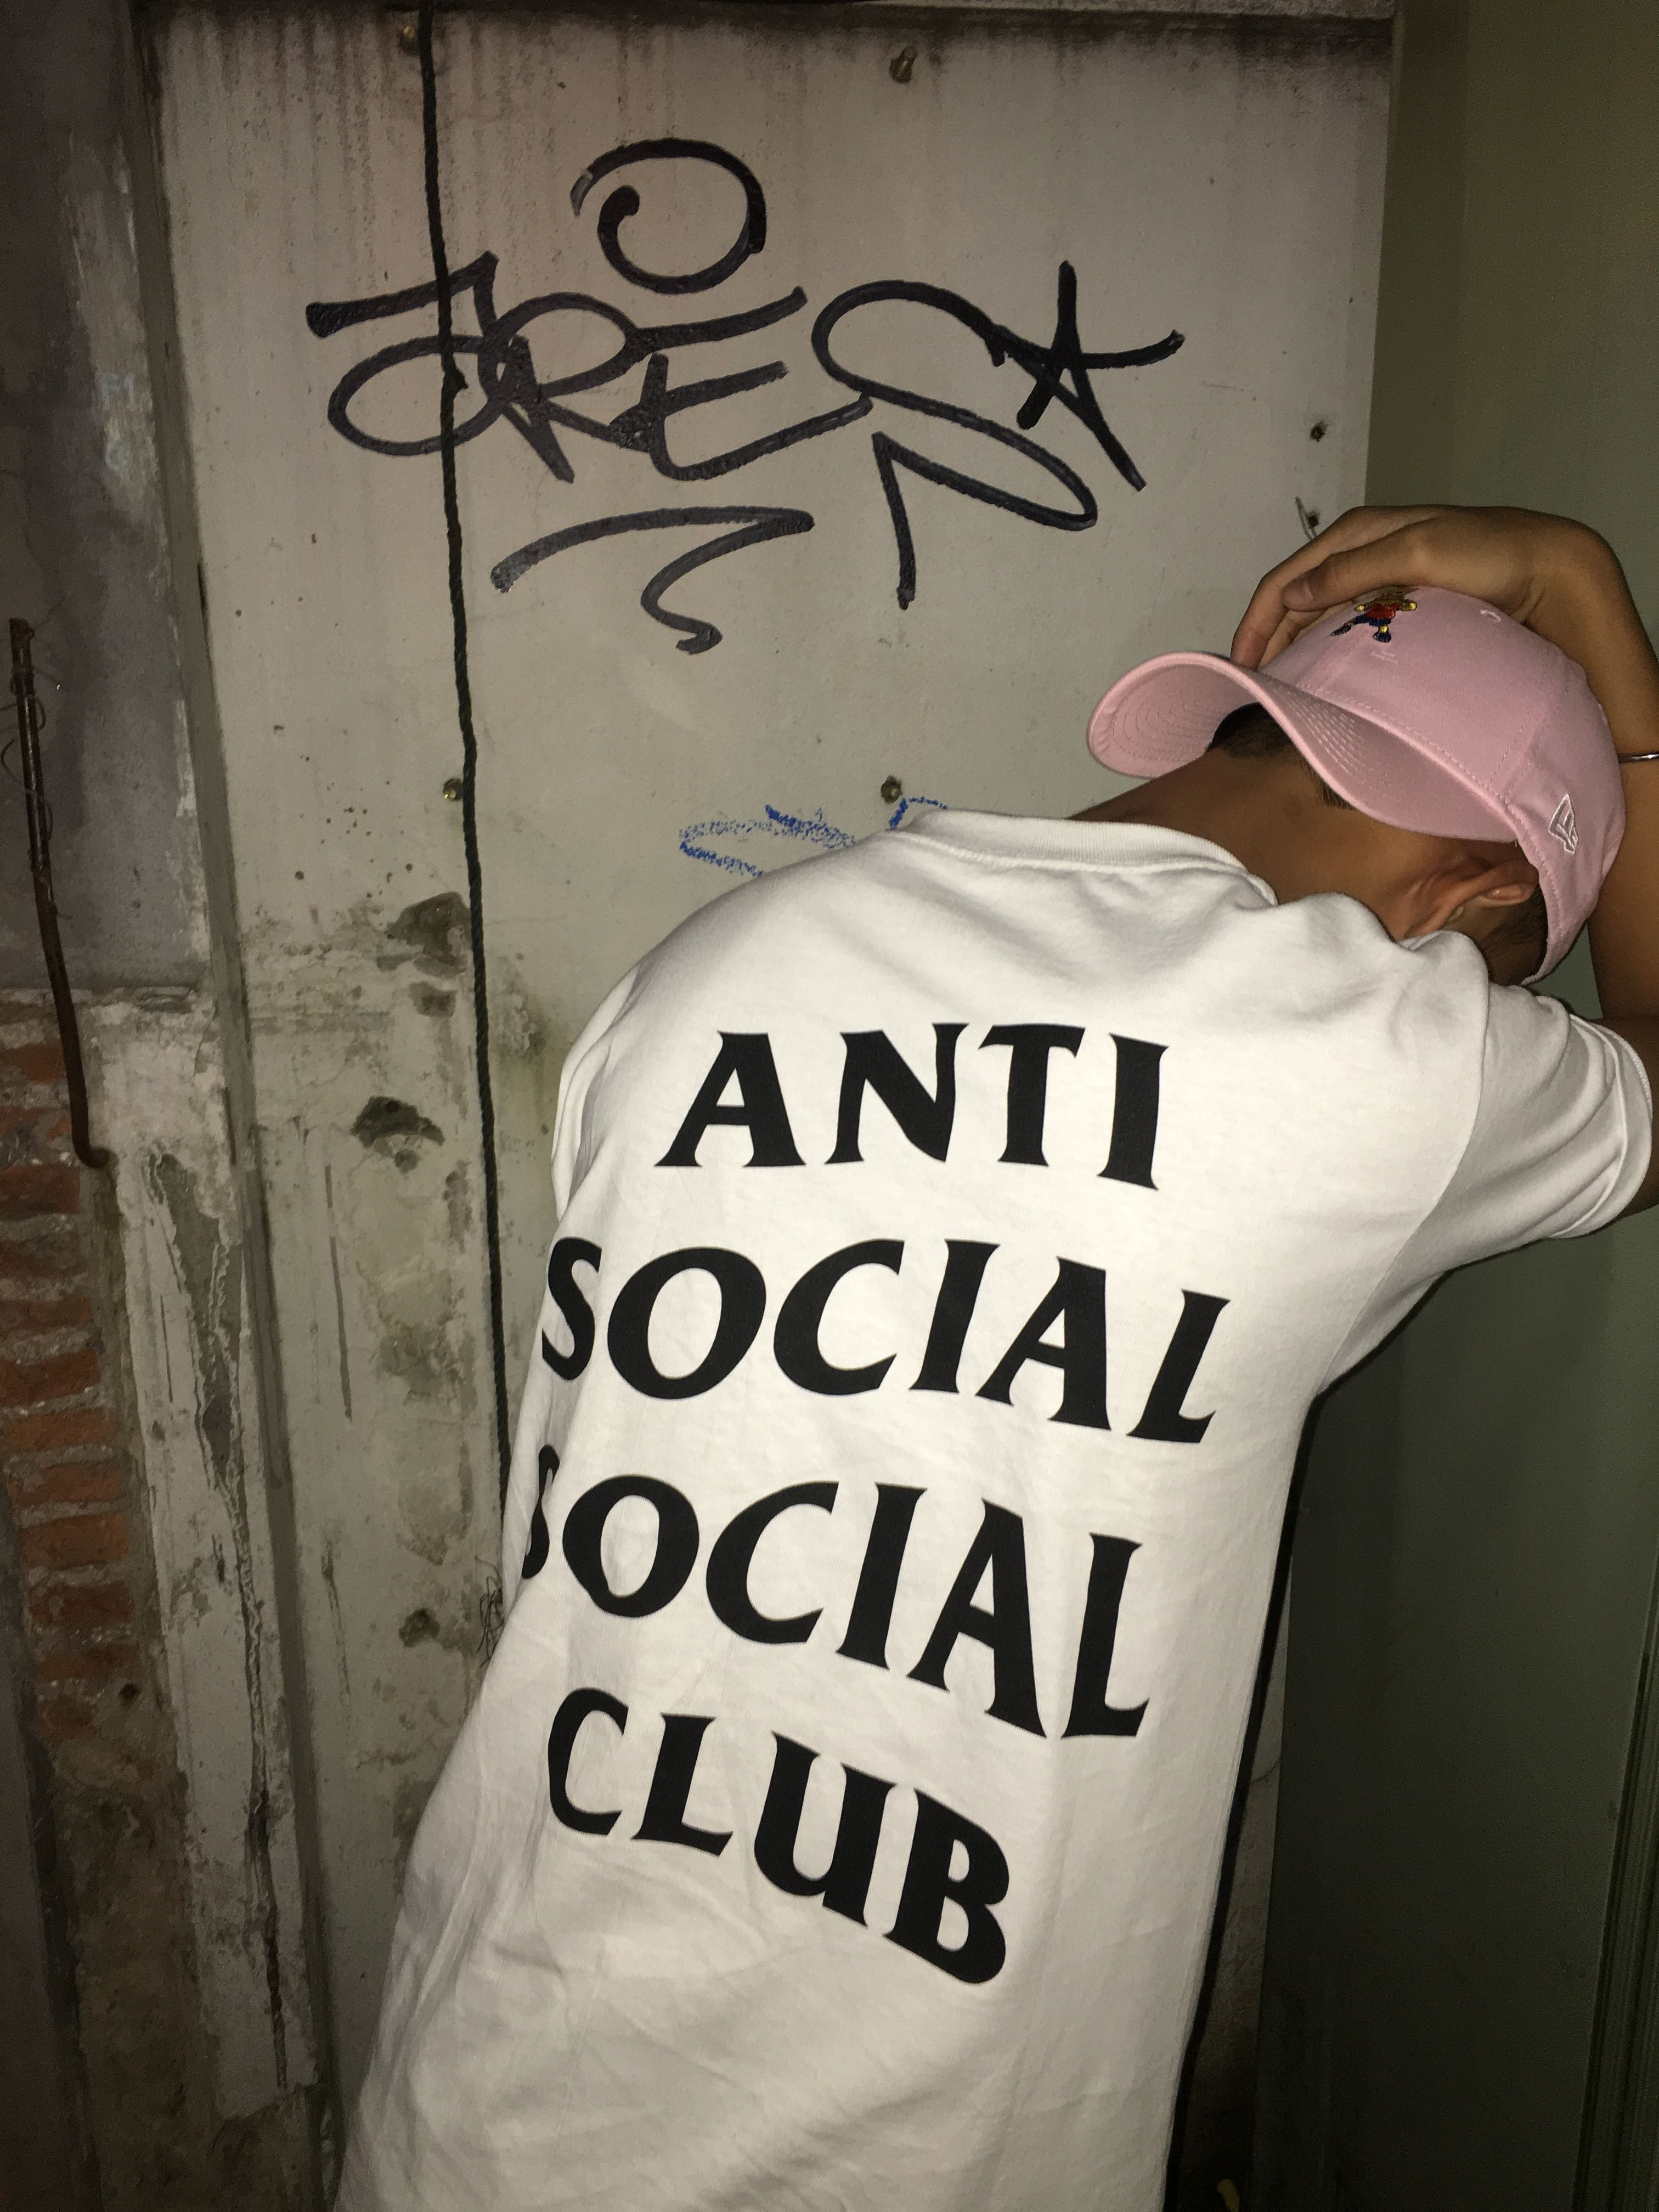 Pin by Soton.b on Street Fashion Pinterest Anti social